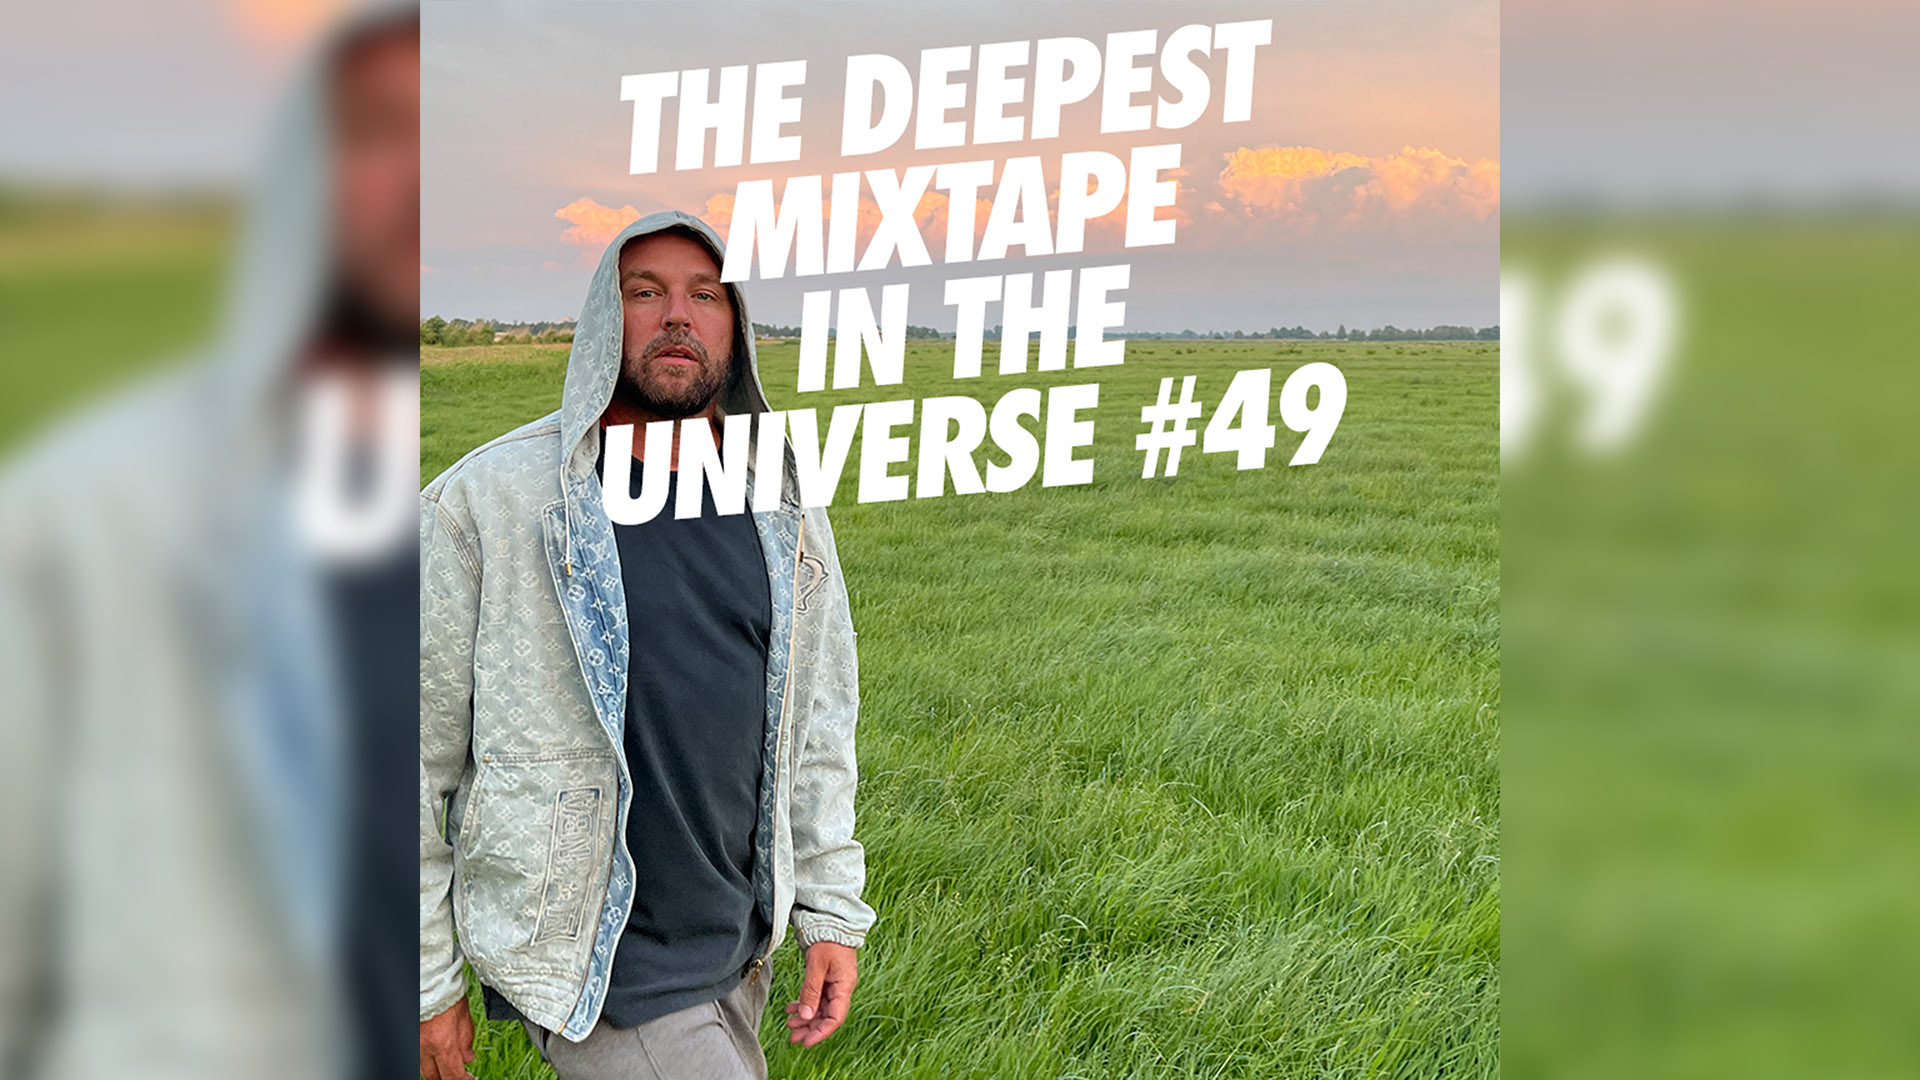 The Deepest Mixtape in the Universe